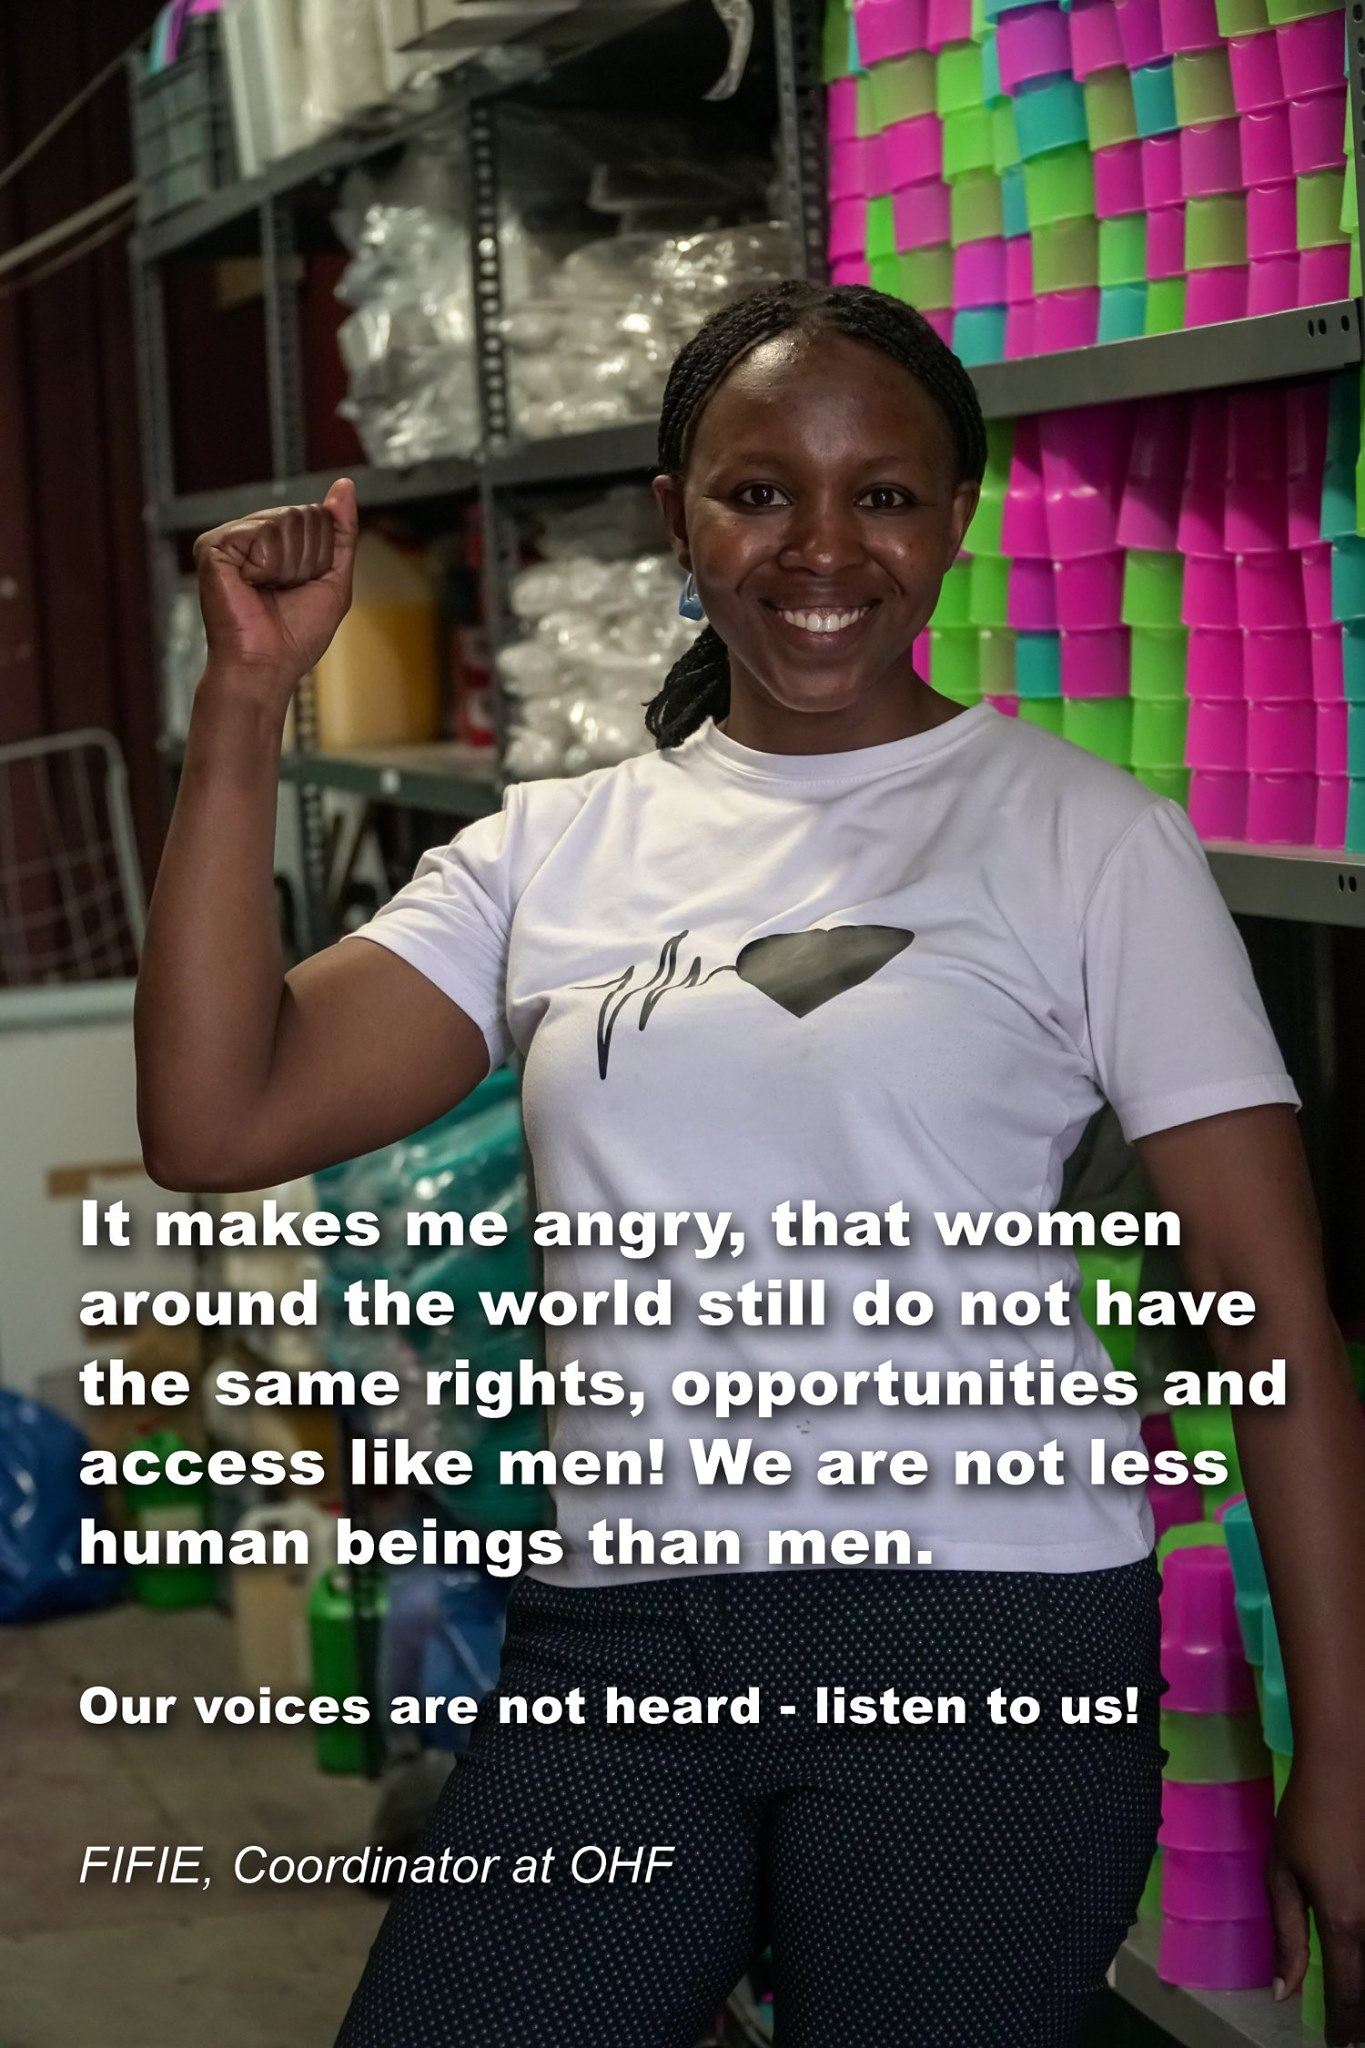 Fifie_Womens rights_with message